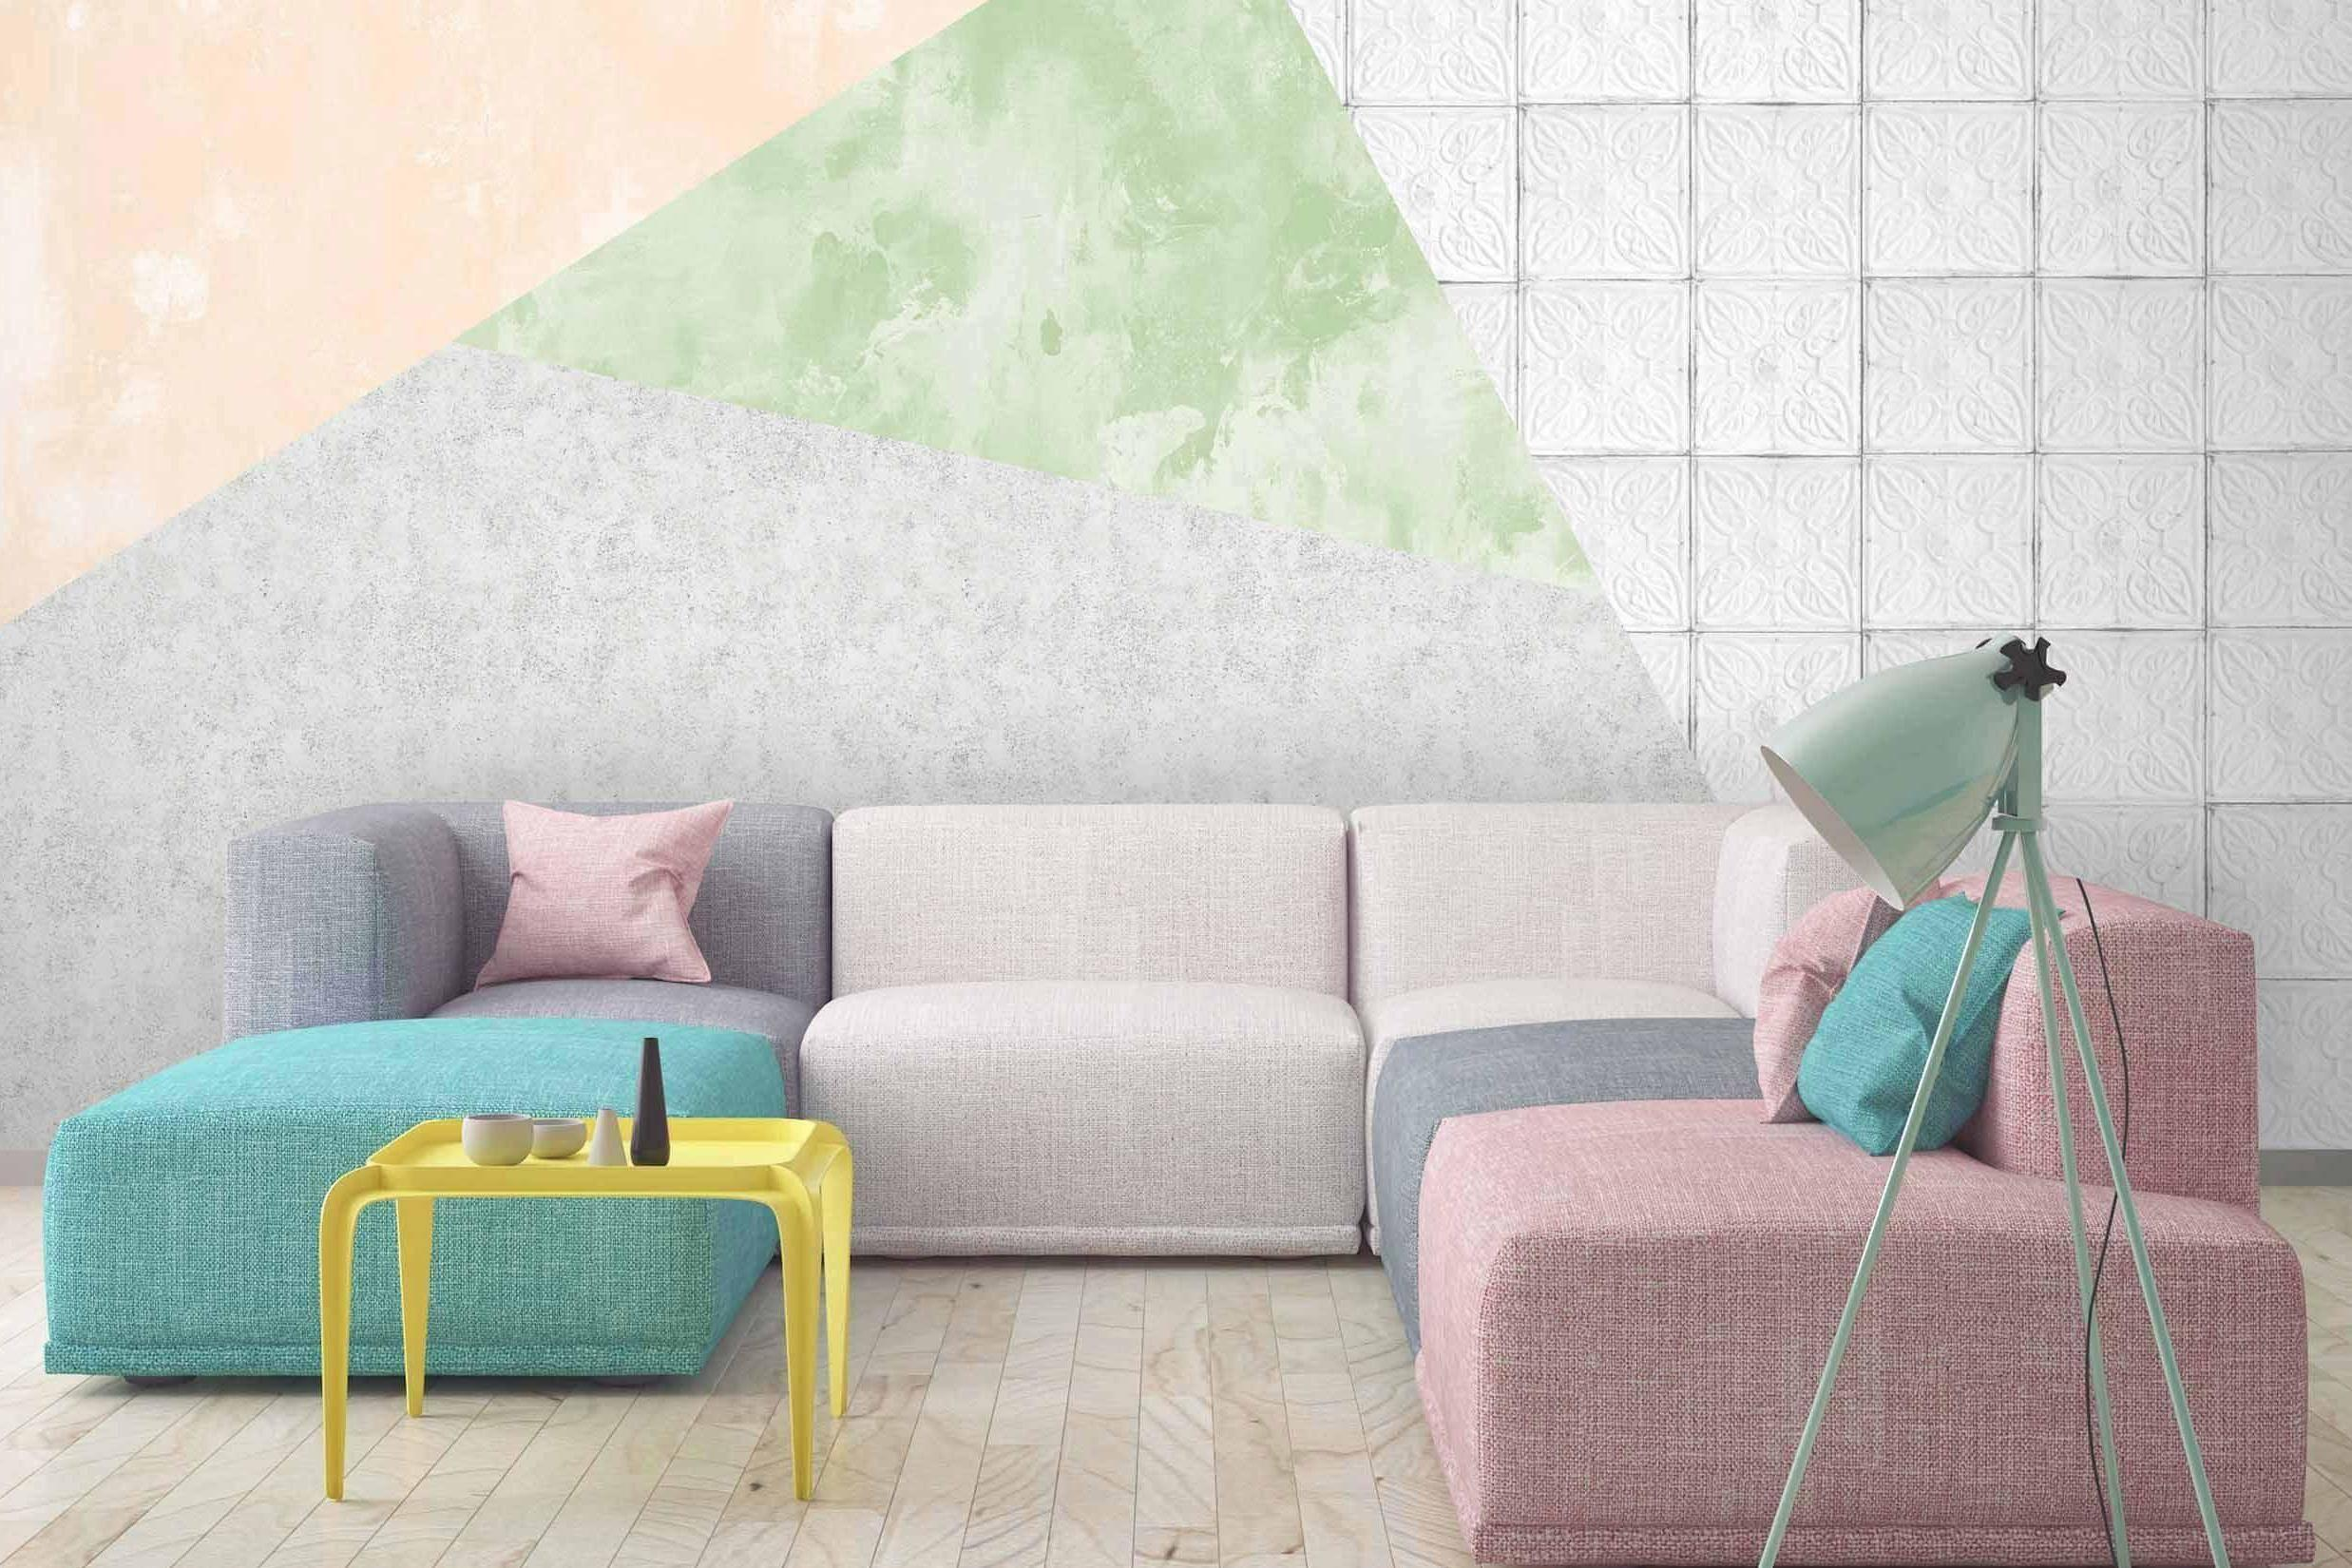 Pinterest reveals the top interiors trends for our homes in 2019